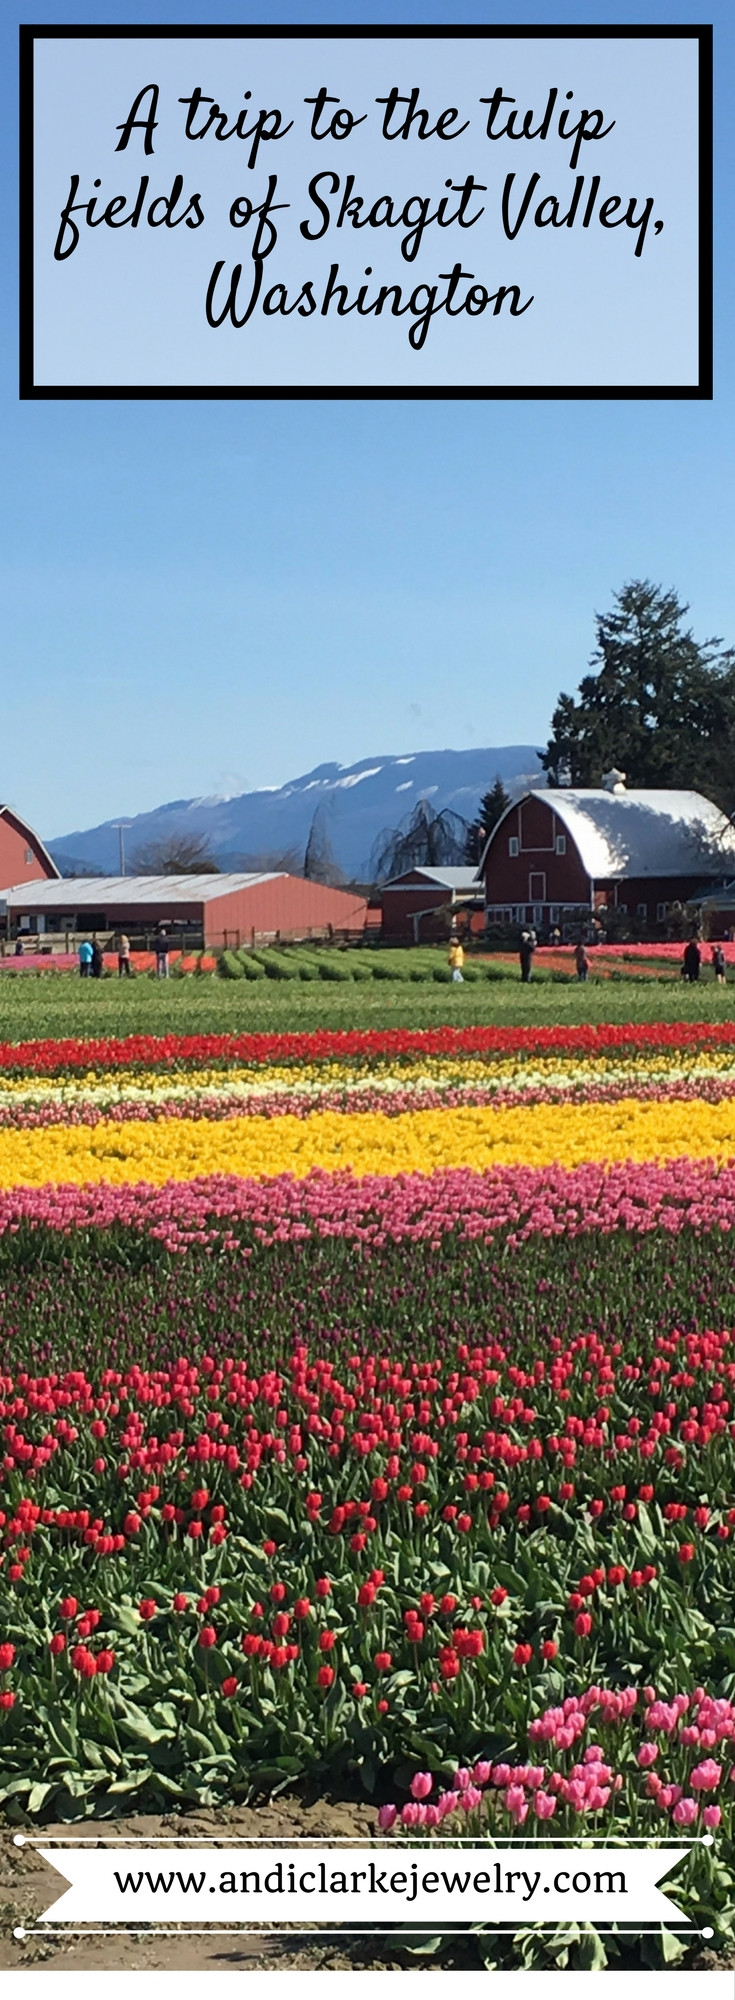 Tulip fields with barns in back ground.